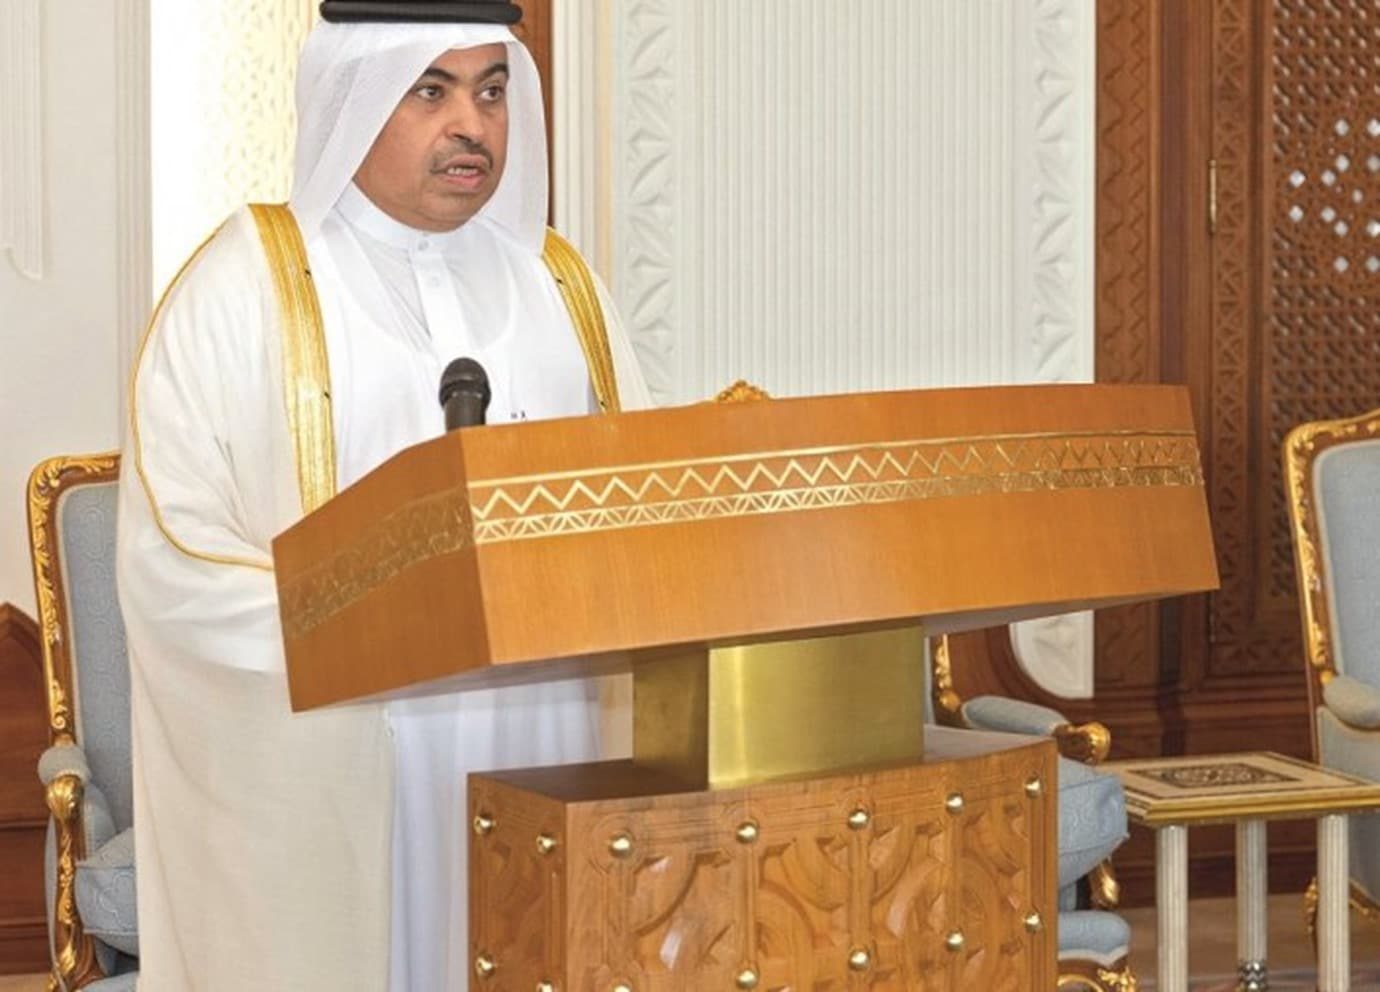 Qatar's policies placed economy at forefront globally